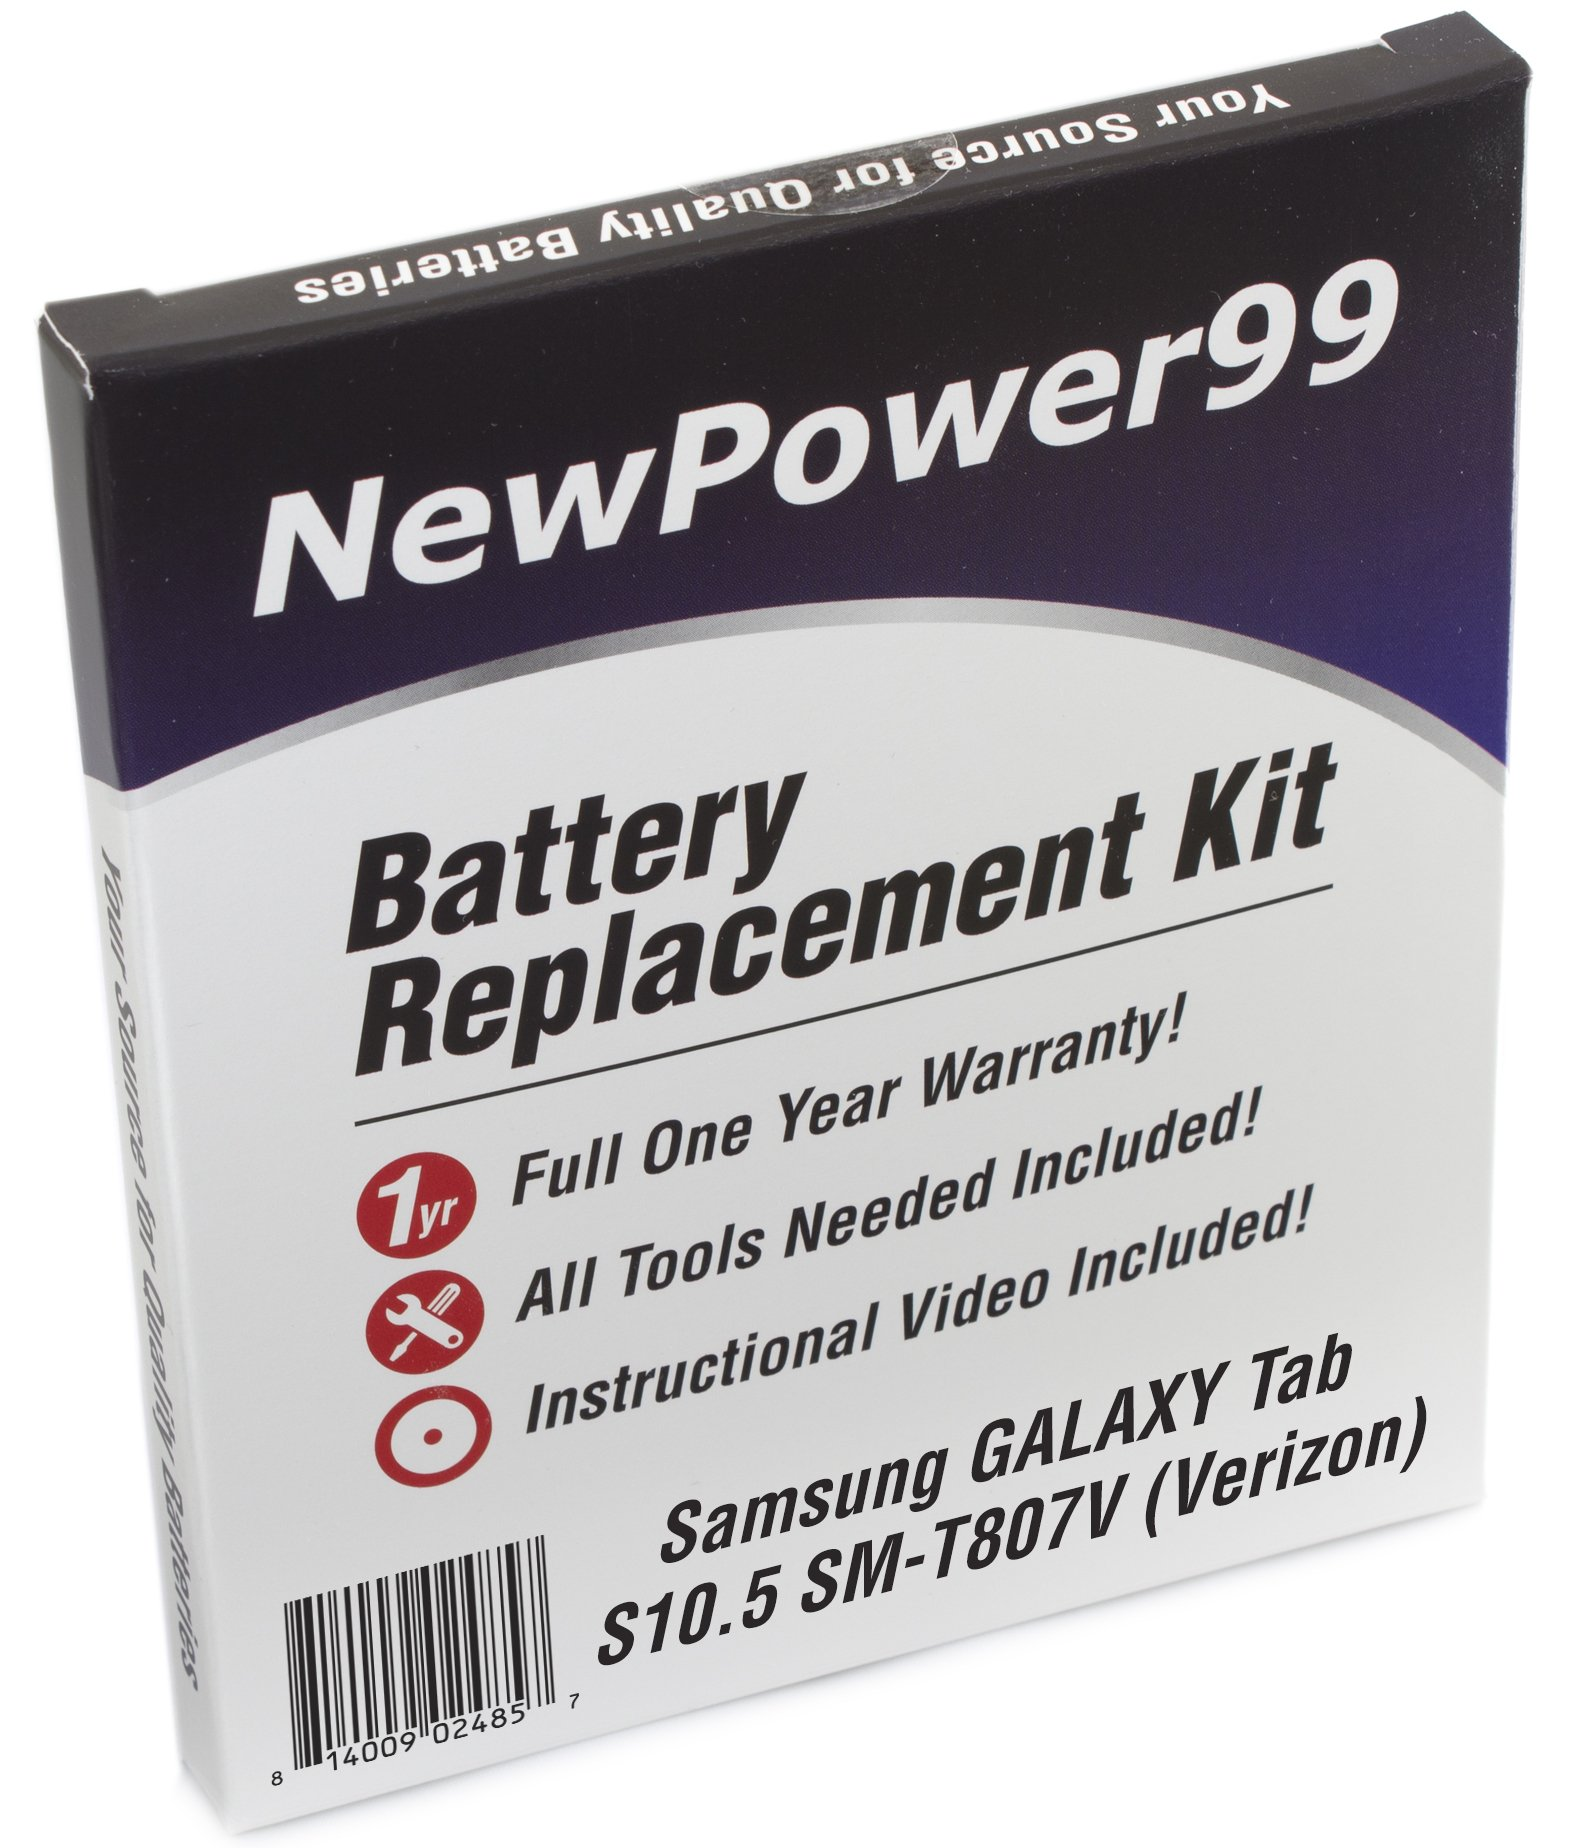 ''				NewPower99 Battery Replacement Kit with Battery, Video Instructions and Tools for Samsung Galaxy Tab S 10.5 SM-T807V''